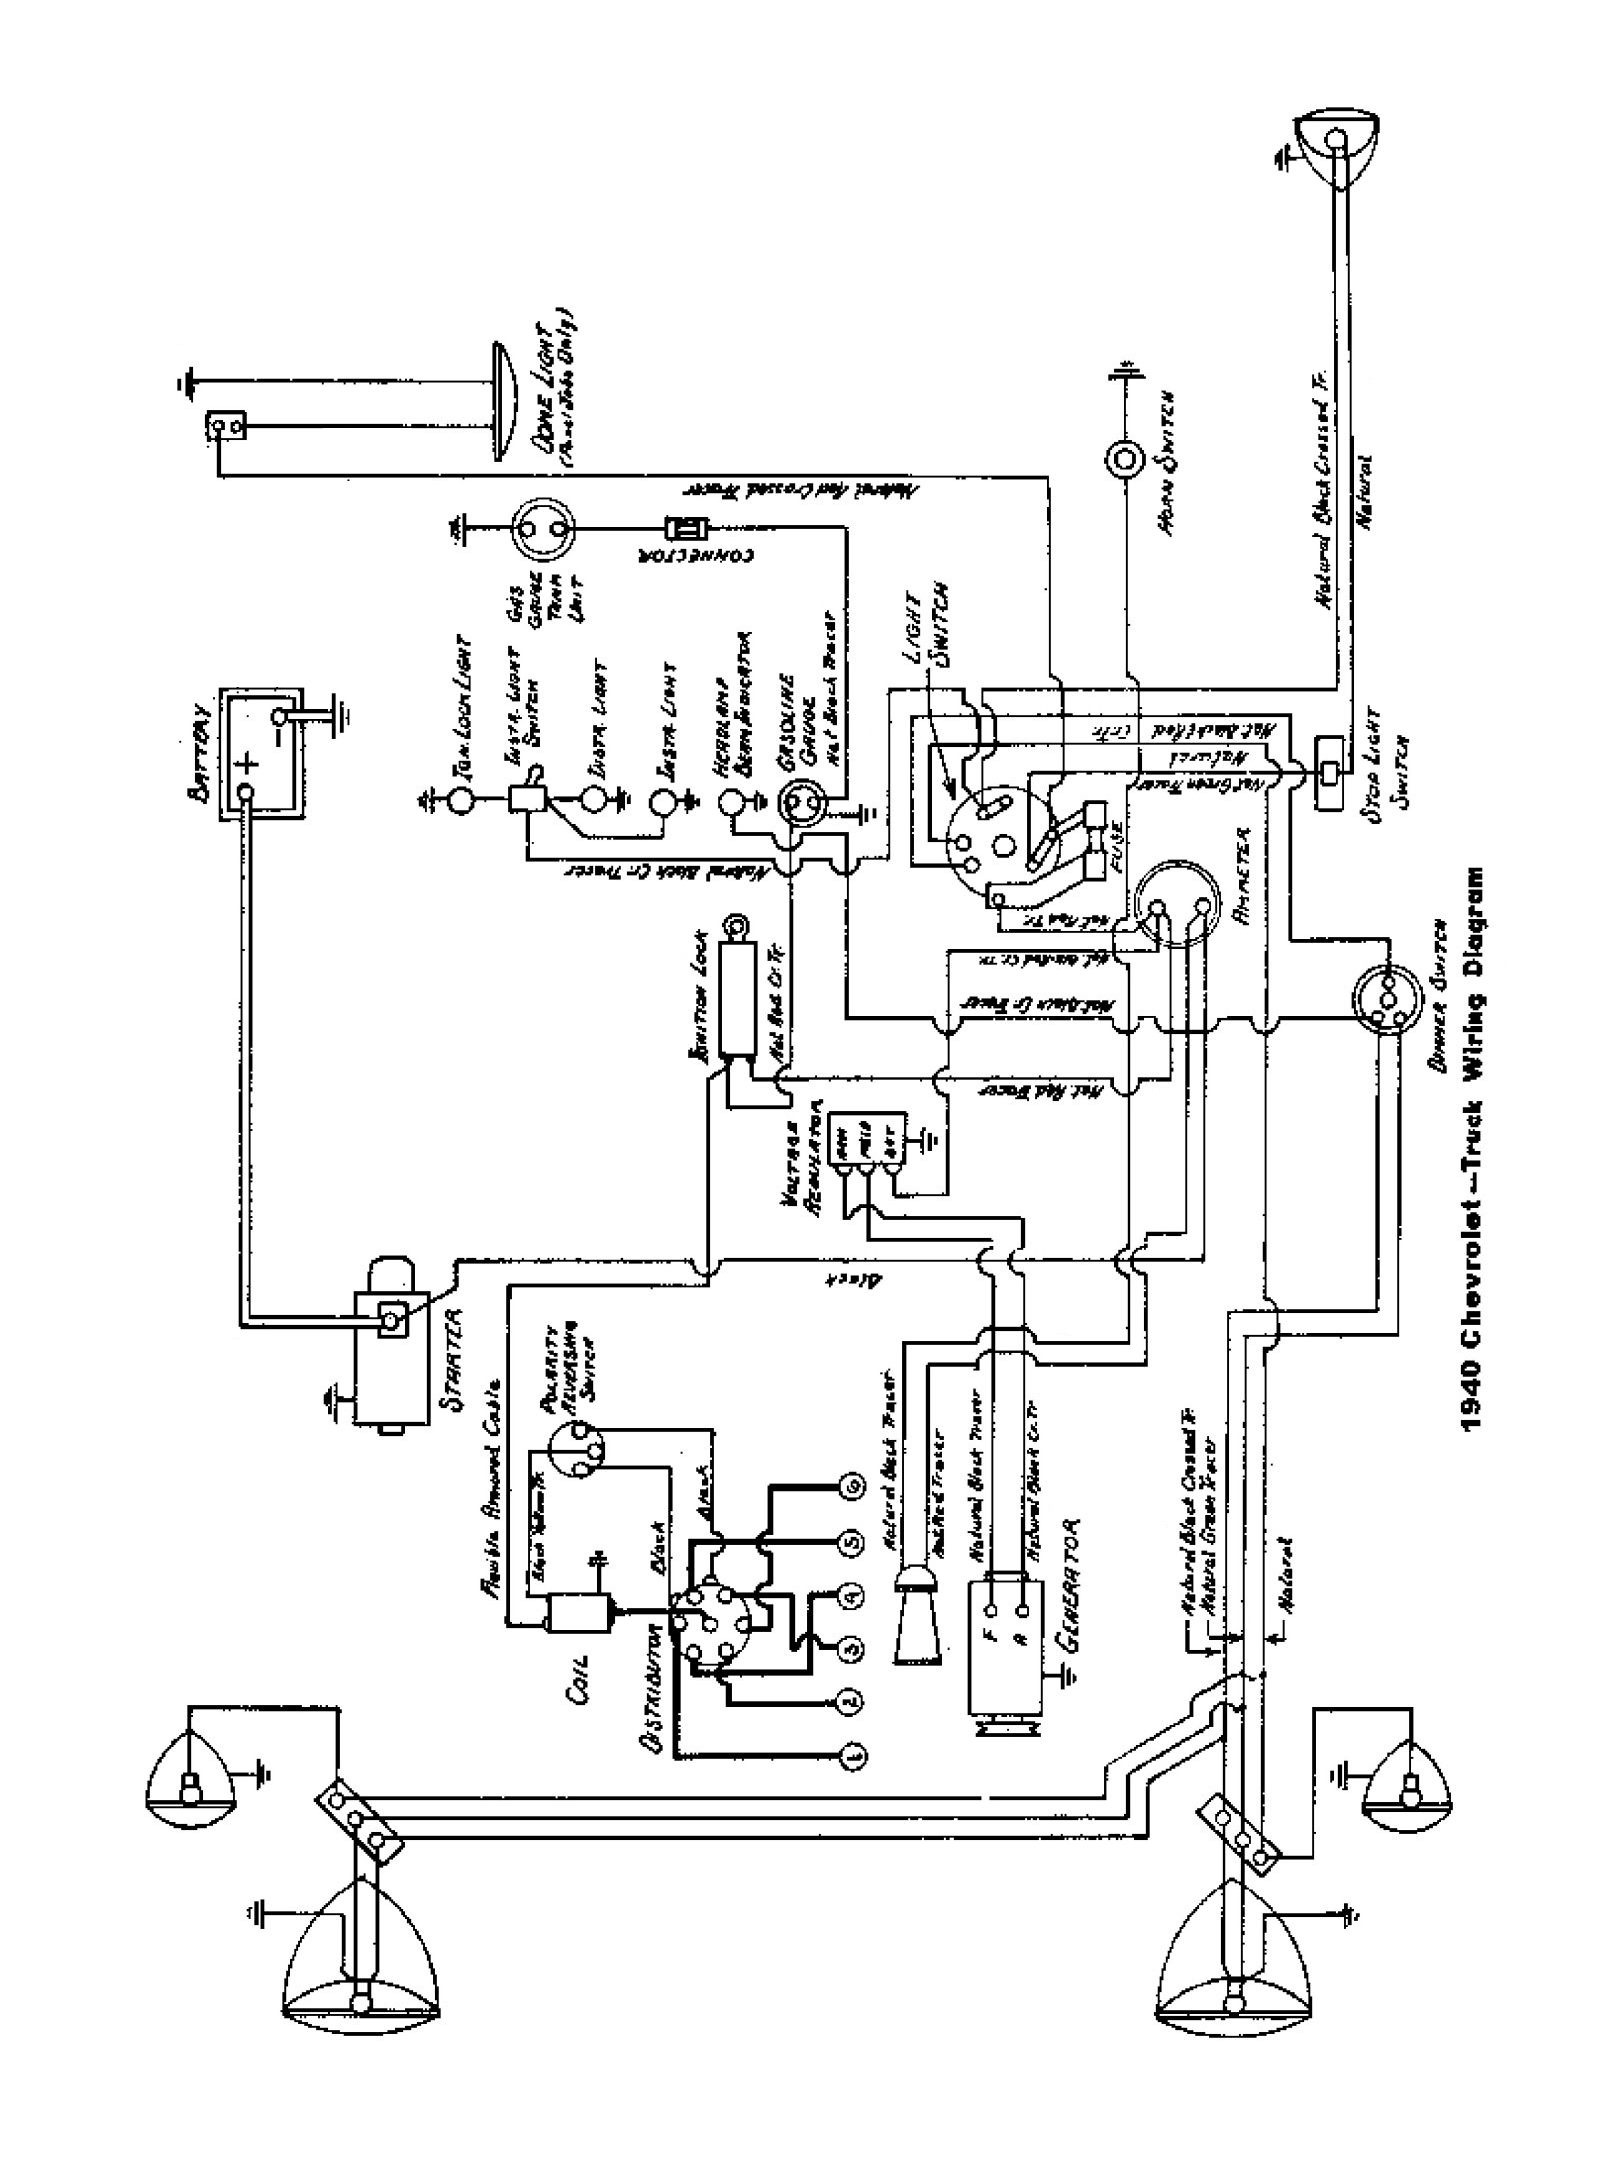 1957 Ford Wiring Harness - WE Wiring Diagram Ford Territory Wiring Diagram on ford schematics, ford engine diagrams, ford wire harness repair, ford hvac diagram, 1931 ford model a diagrams, ford maintenance schedule, ford alternator diagrams, ford exploded view diagrams, ford wiring harness, ford relay diagrams, ford distributor diagrams, ford electrical diagrams, ford wiring color codes, ford regulator diagram, ford wiring parts, ford trim diagrams, chevy s10 front diagrams, ford stereo wiring, ford parts diagrams, ford wire diagrams,